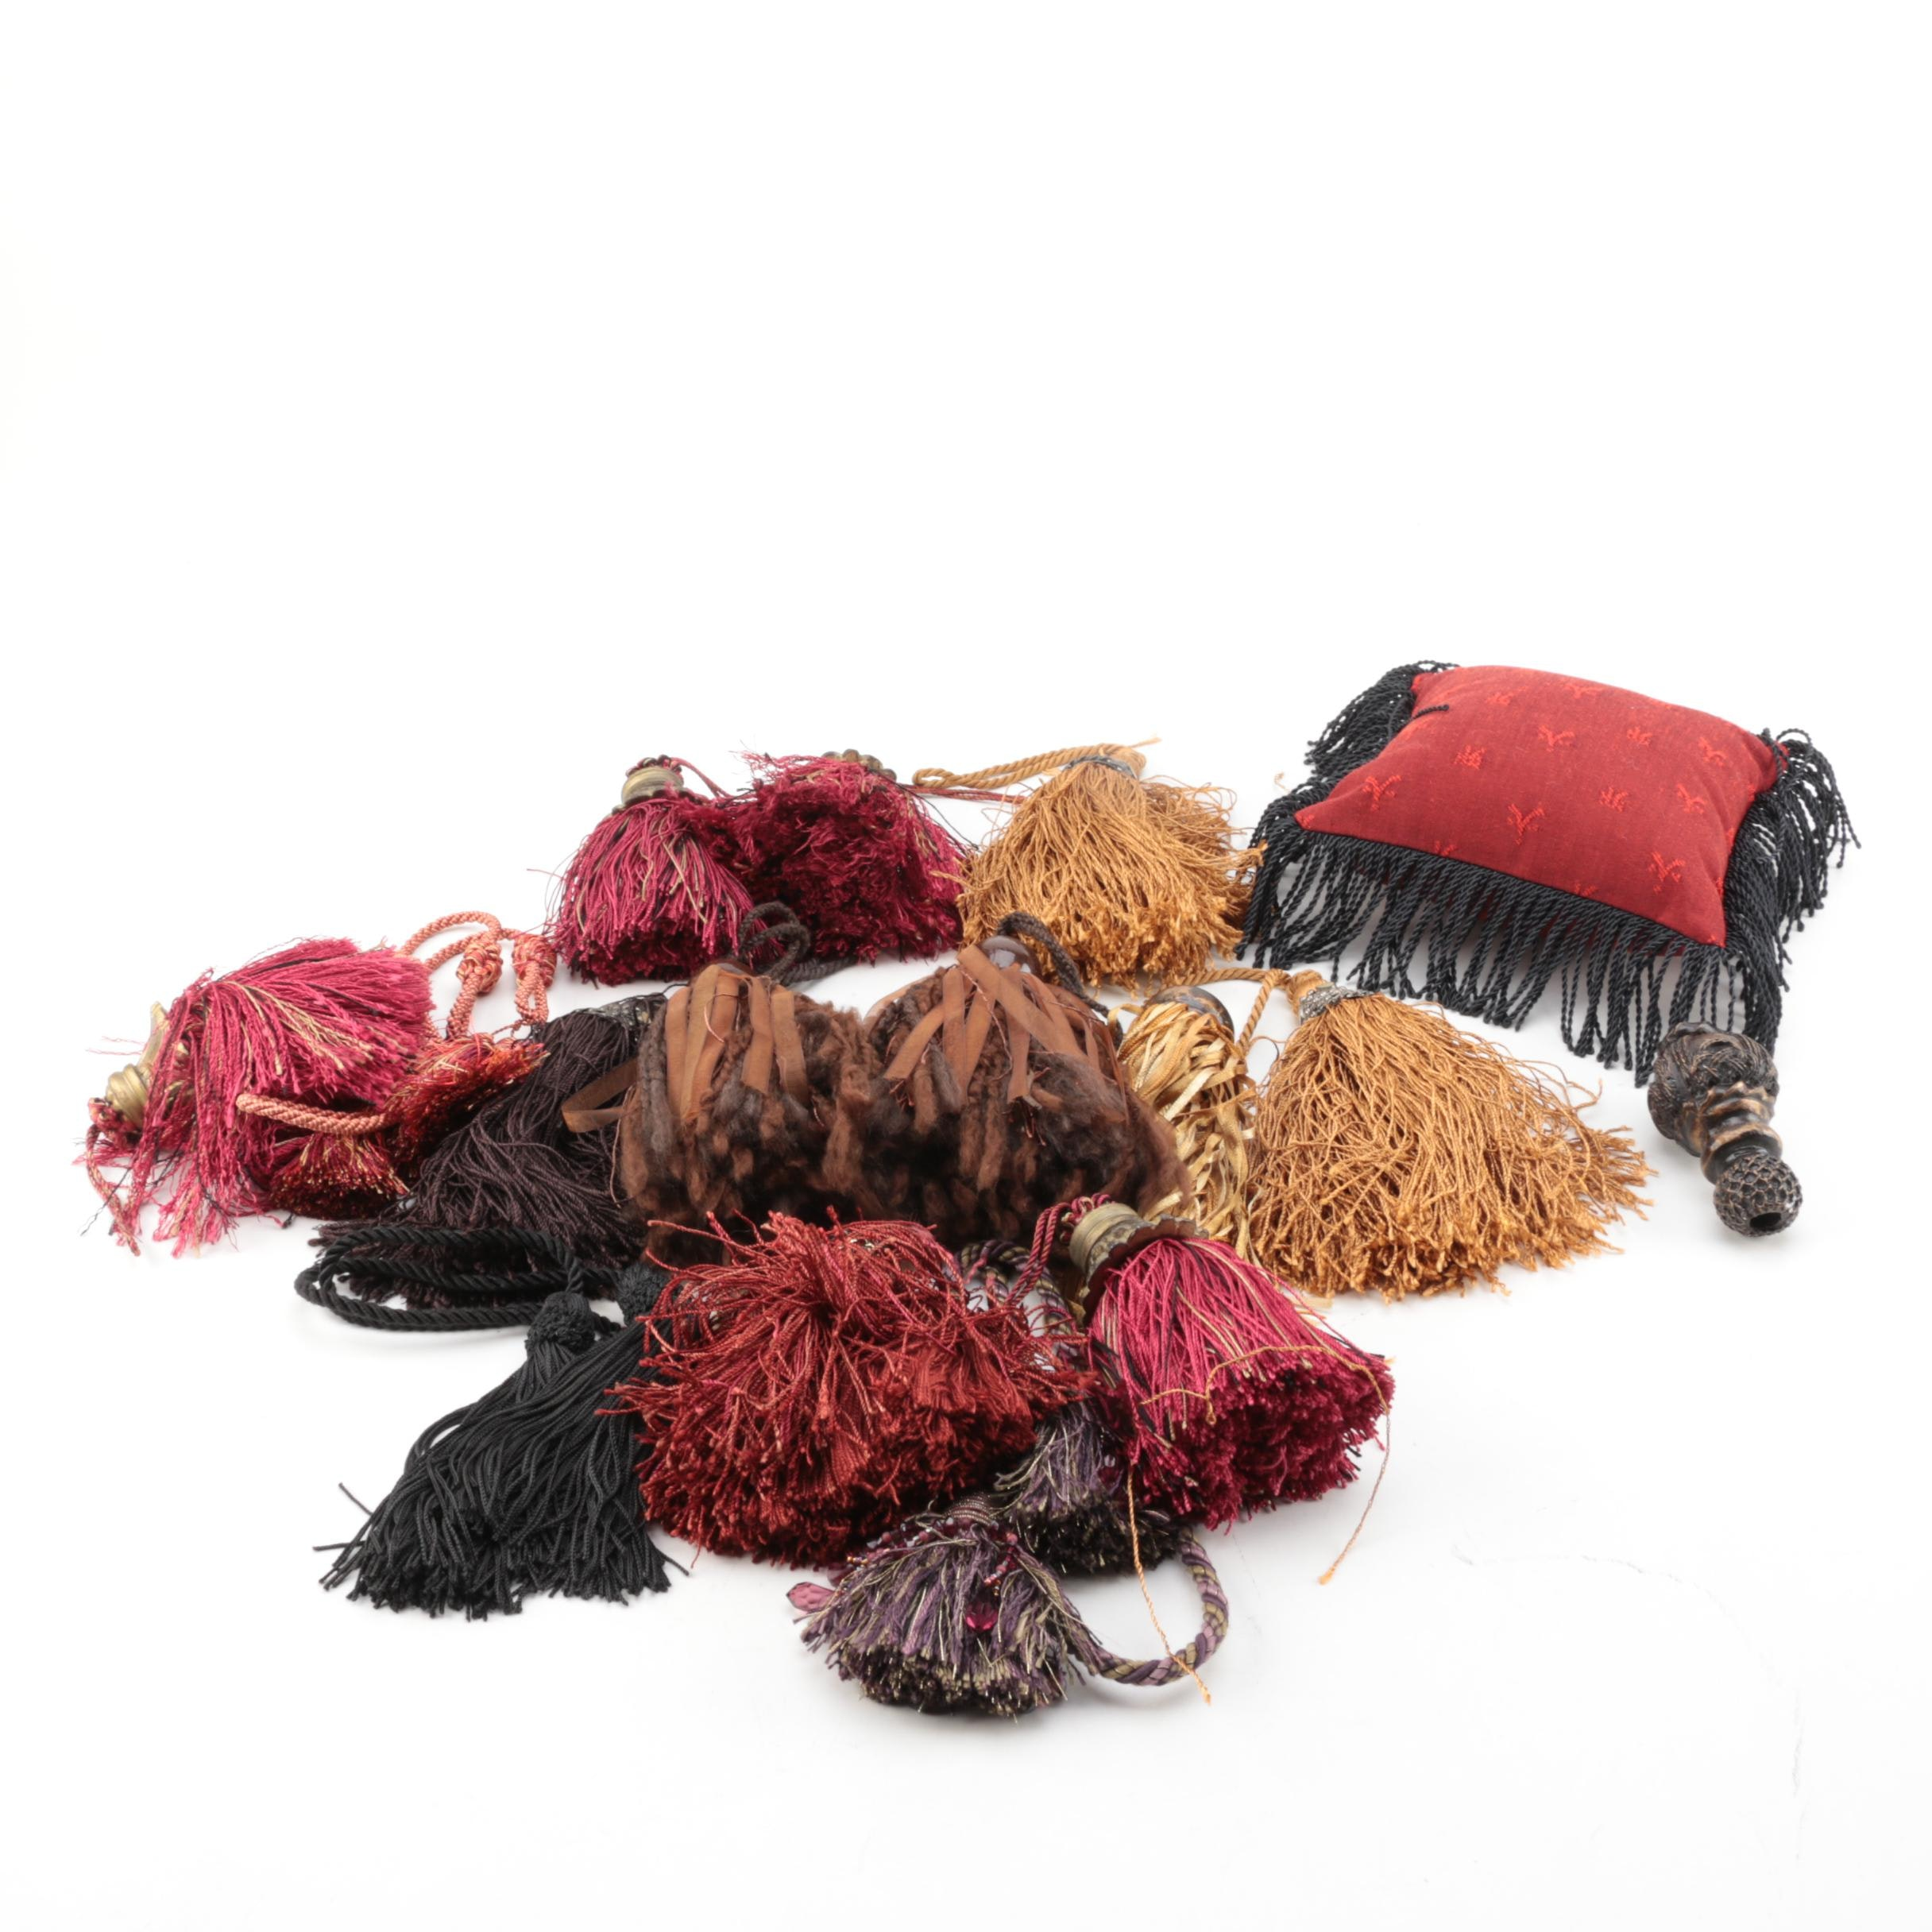 Curtain Tassels and Decorative Pillow